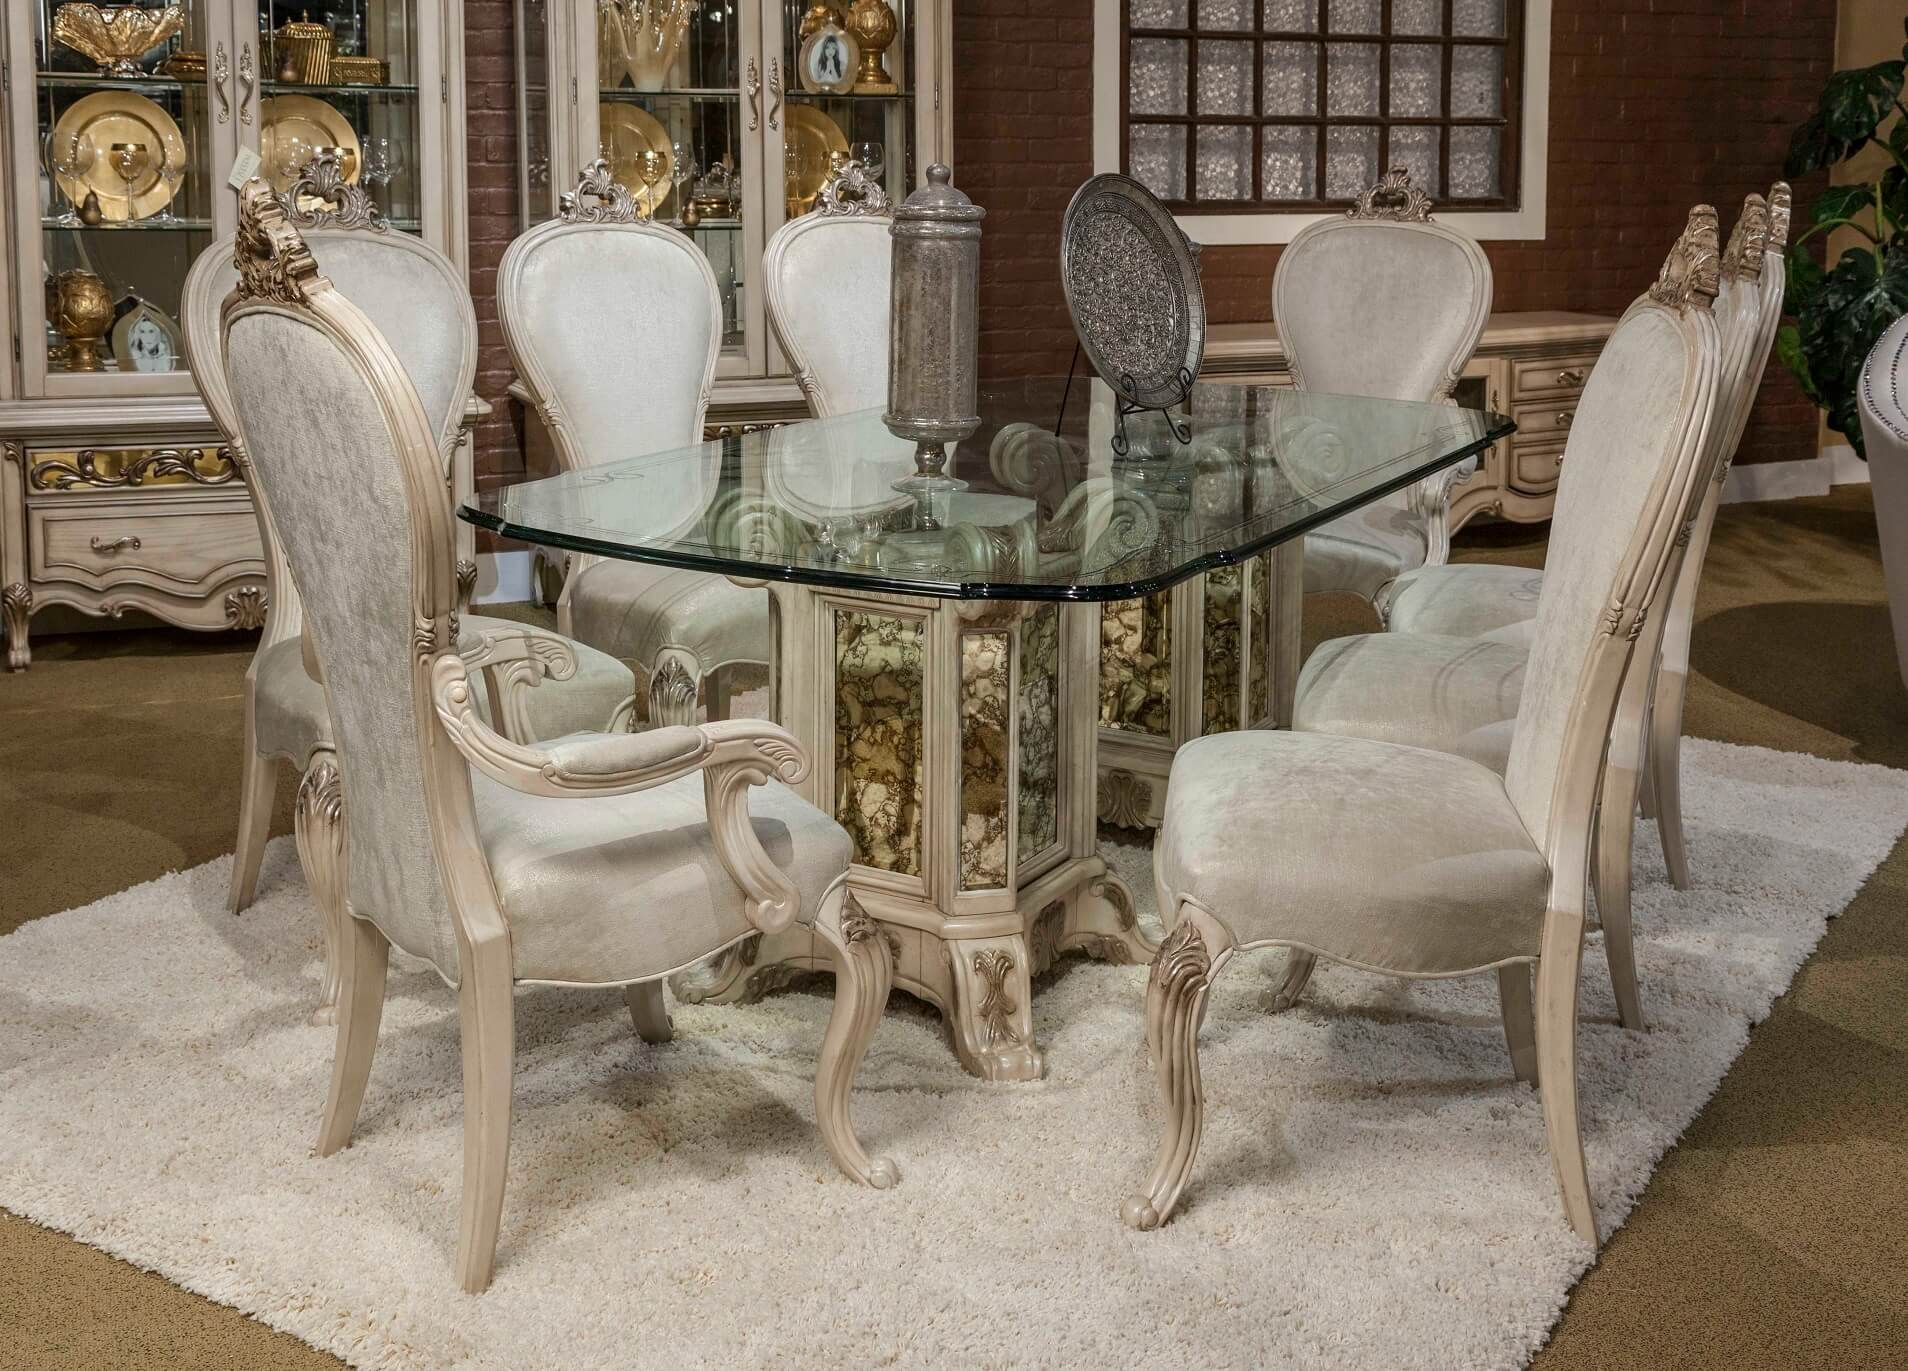 michael panel valencia living comforter livings table whole royale customizable upholstered lite lavelle canopy s dining furniture room hollywood night metallic espresso amini office set aico suite round bedroom platine madrid pc sets collection starry